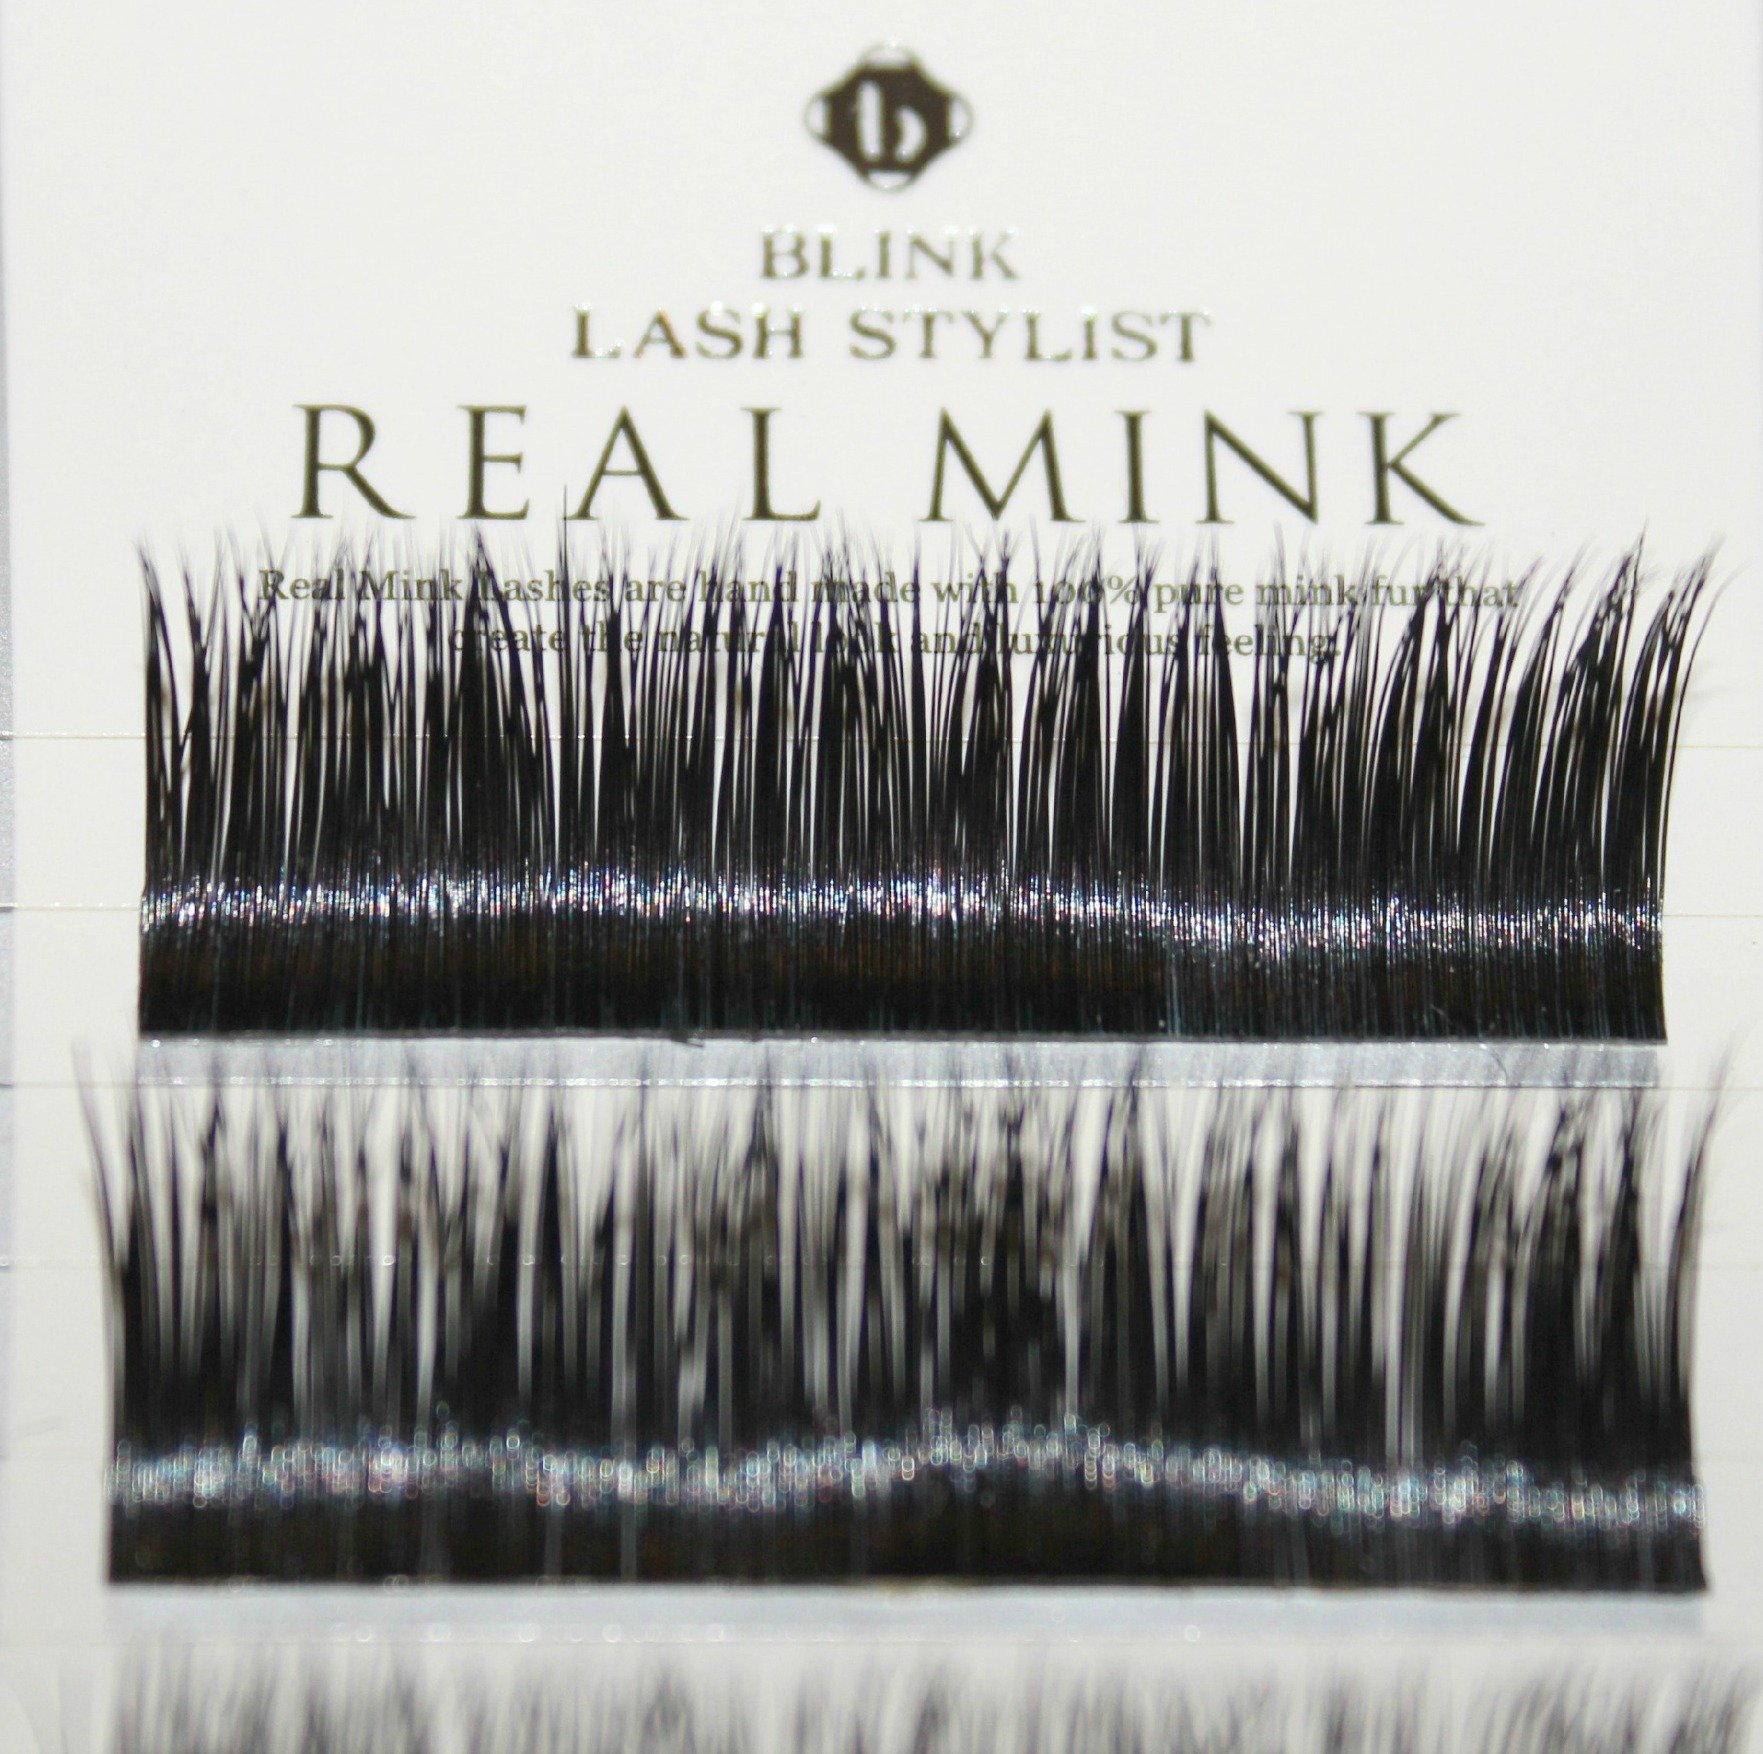 BLINK 100% Real Mink Fur Lashes C Curl 15mm for Eyelash Extension with Free iBeautiful Sample